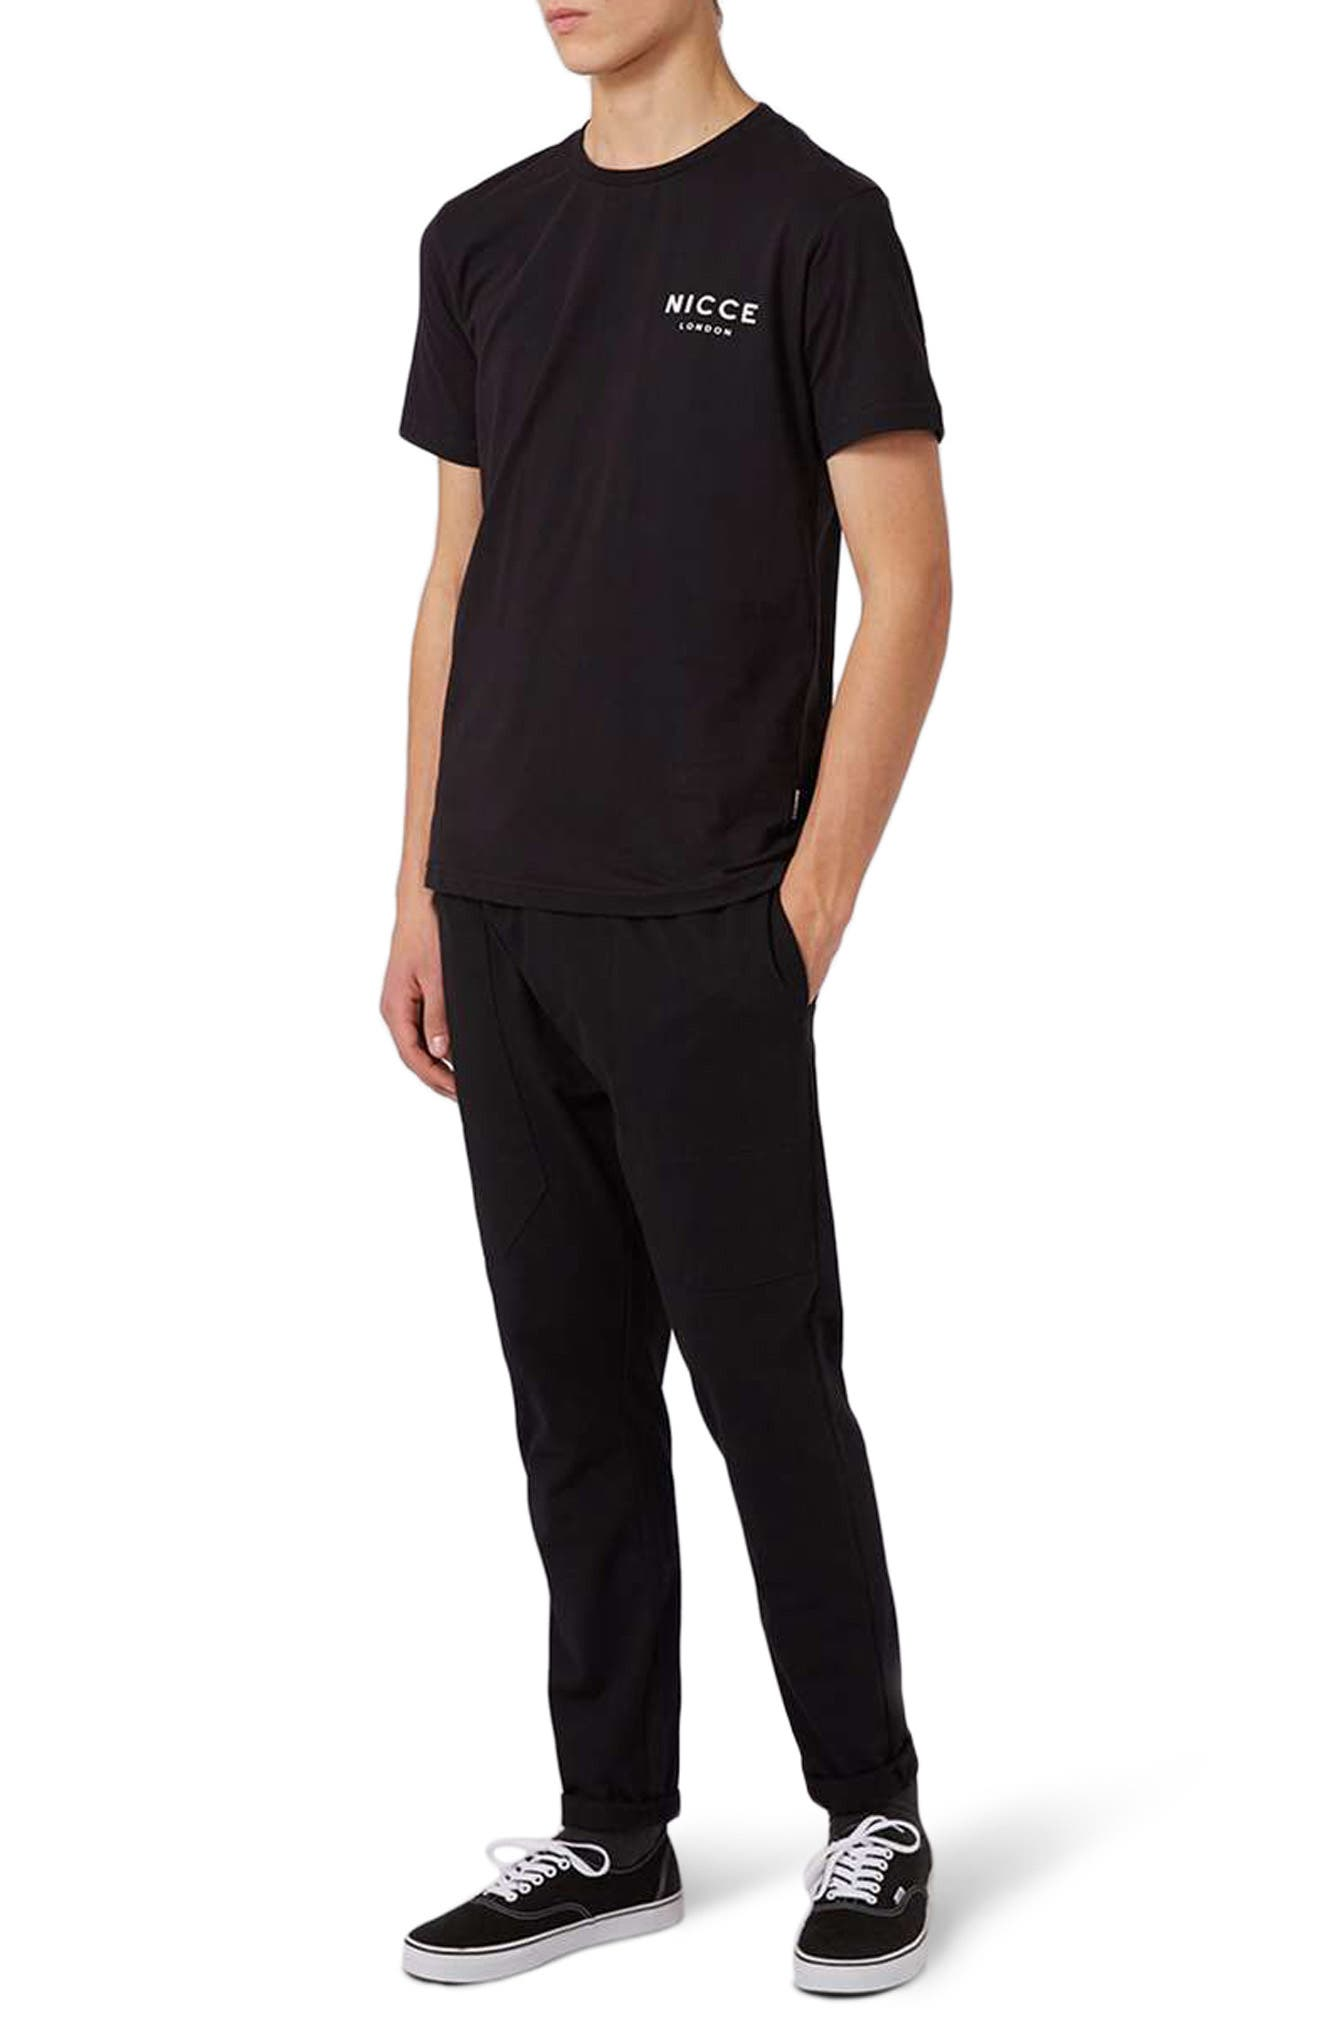 NICCE Graphic T-Shirt,                         Main,                         color, 001